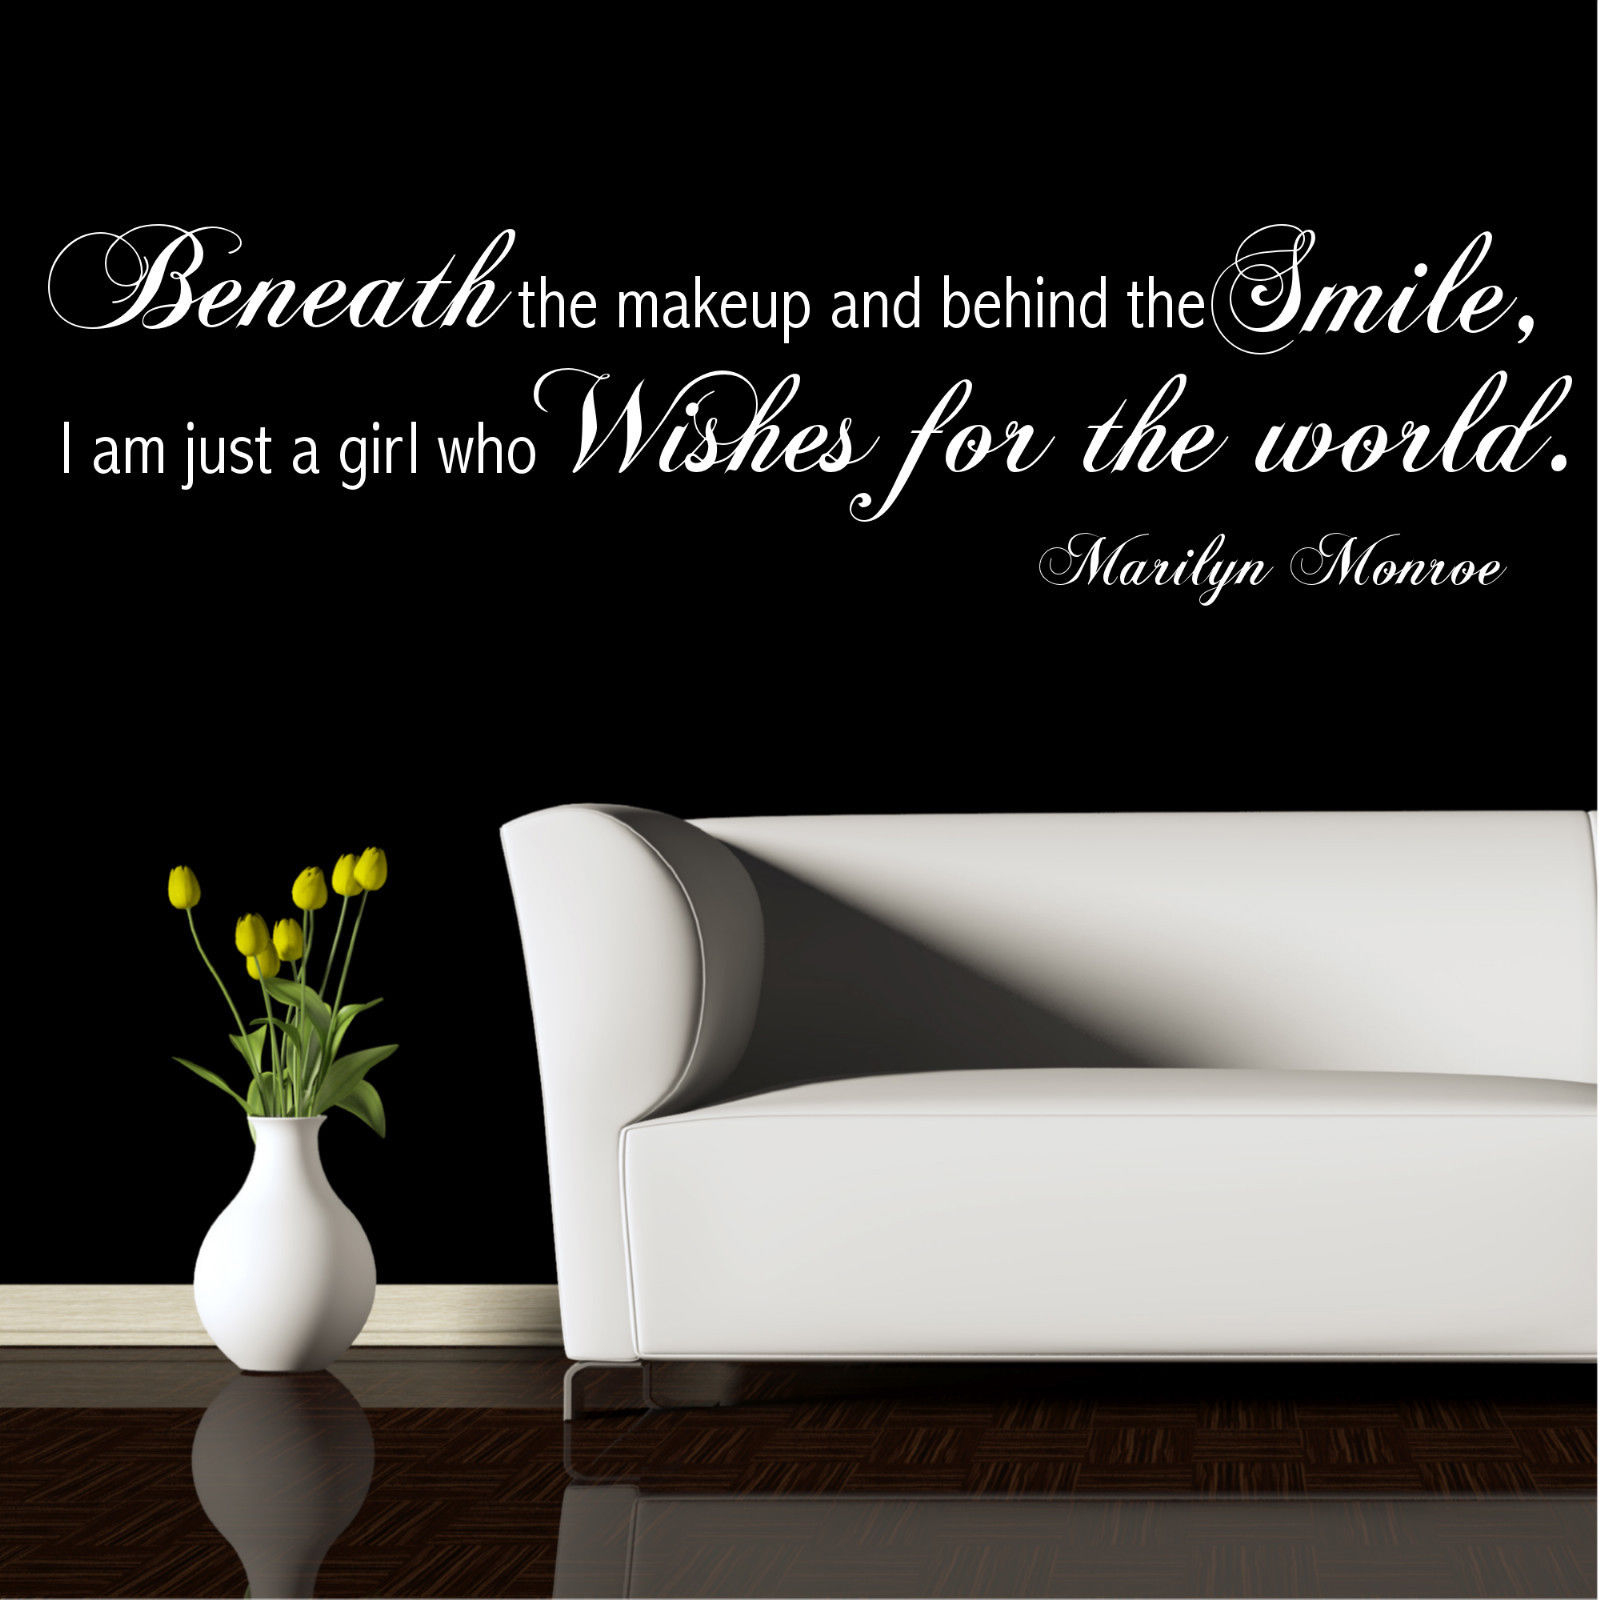 Marilyn Monroe Wish Wall Quotes Wall Art Stickers Decal ...